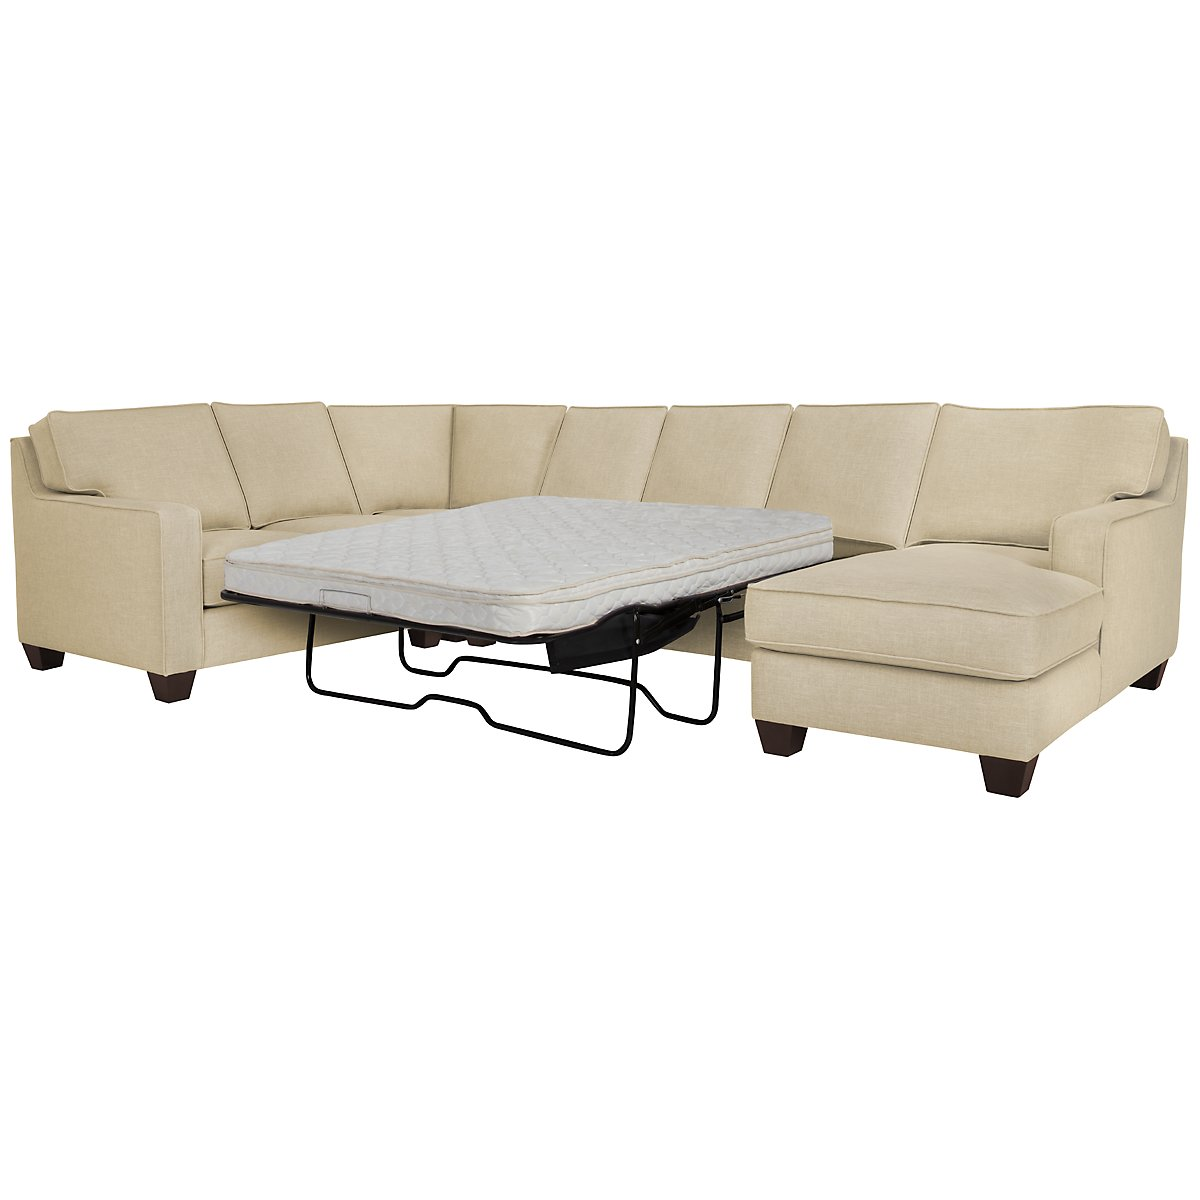 York Beige Fabric Right Chaise Innerspring Sleeper Sectional